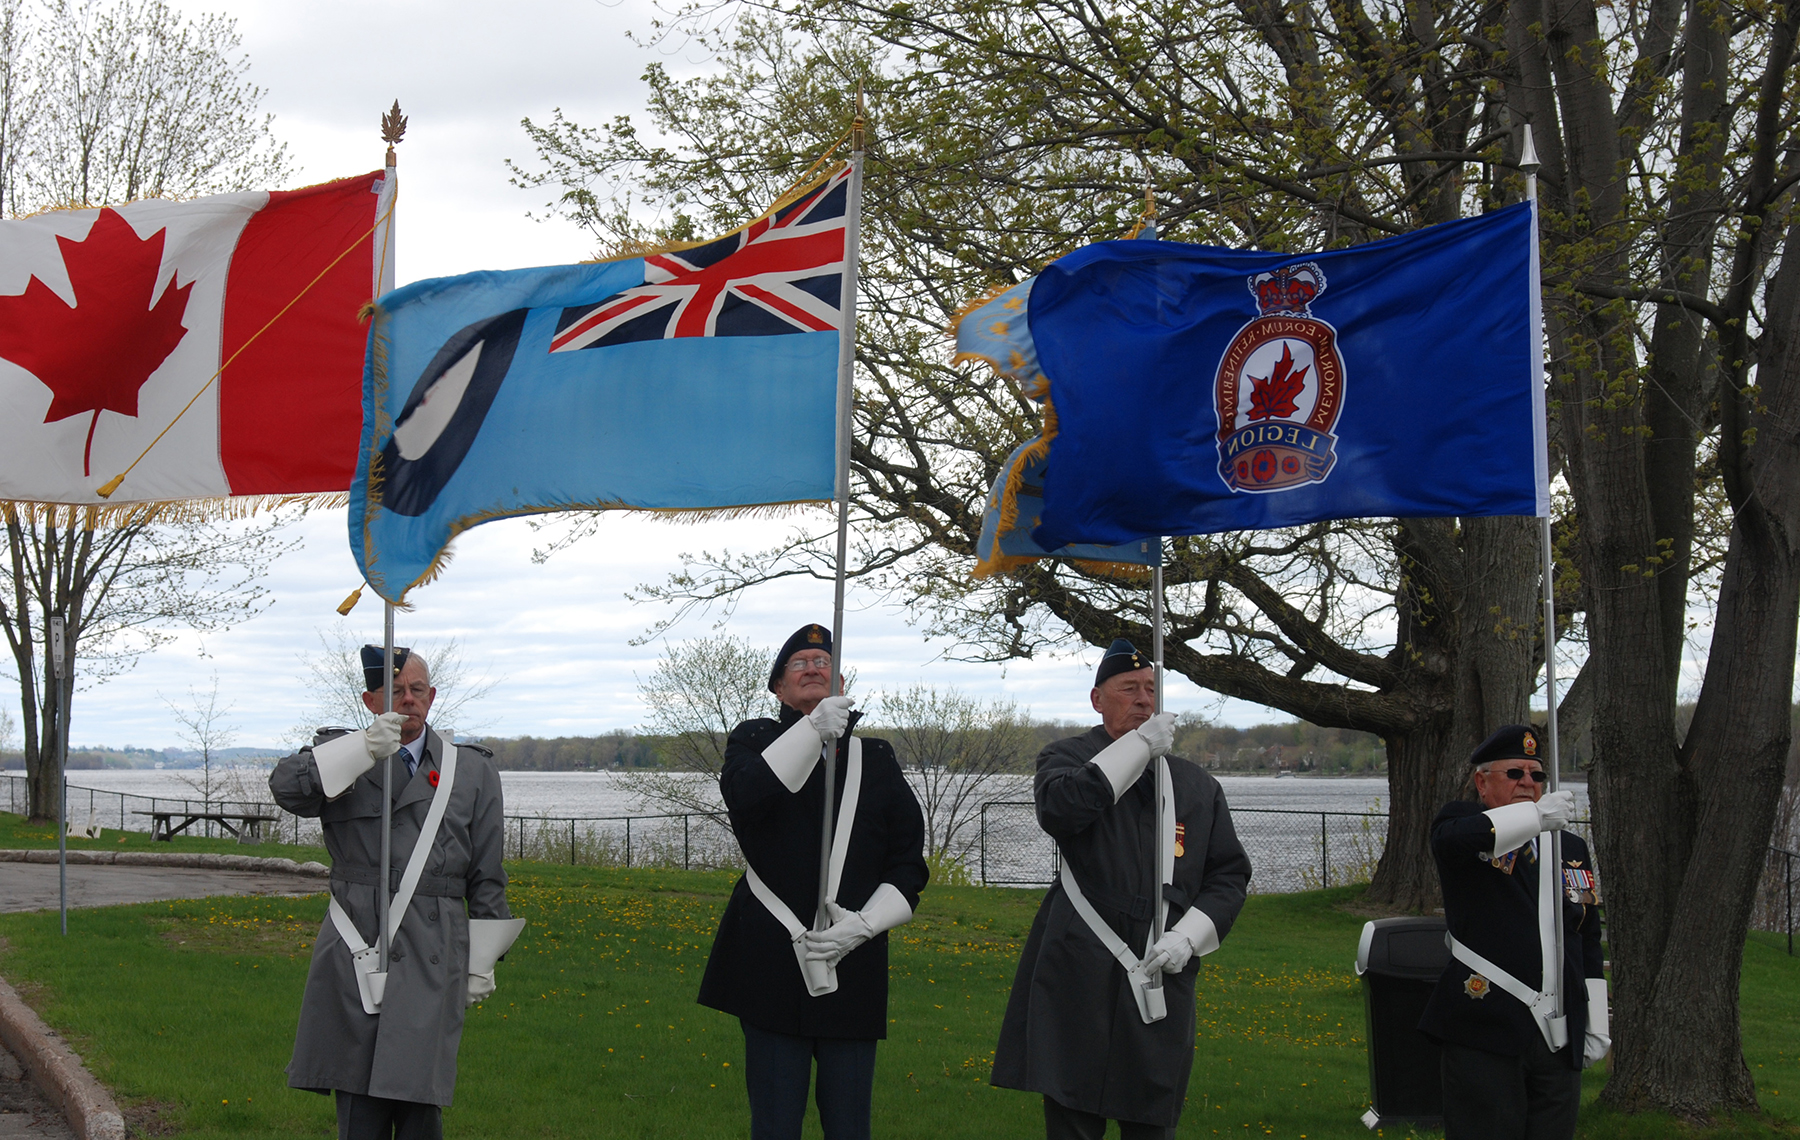 Members from the Royal Canadian Legion Branch 632, Knights of the Round Table (a group of former RCAF airmen) and 410 Wing Royal Canadian Air Force Association hold the flags during the CF-100 crash 60th anniversary commemorative ceremony at Bruyère Village in Orléans, Ontario on May 15, 2016.